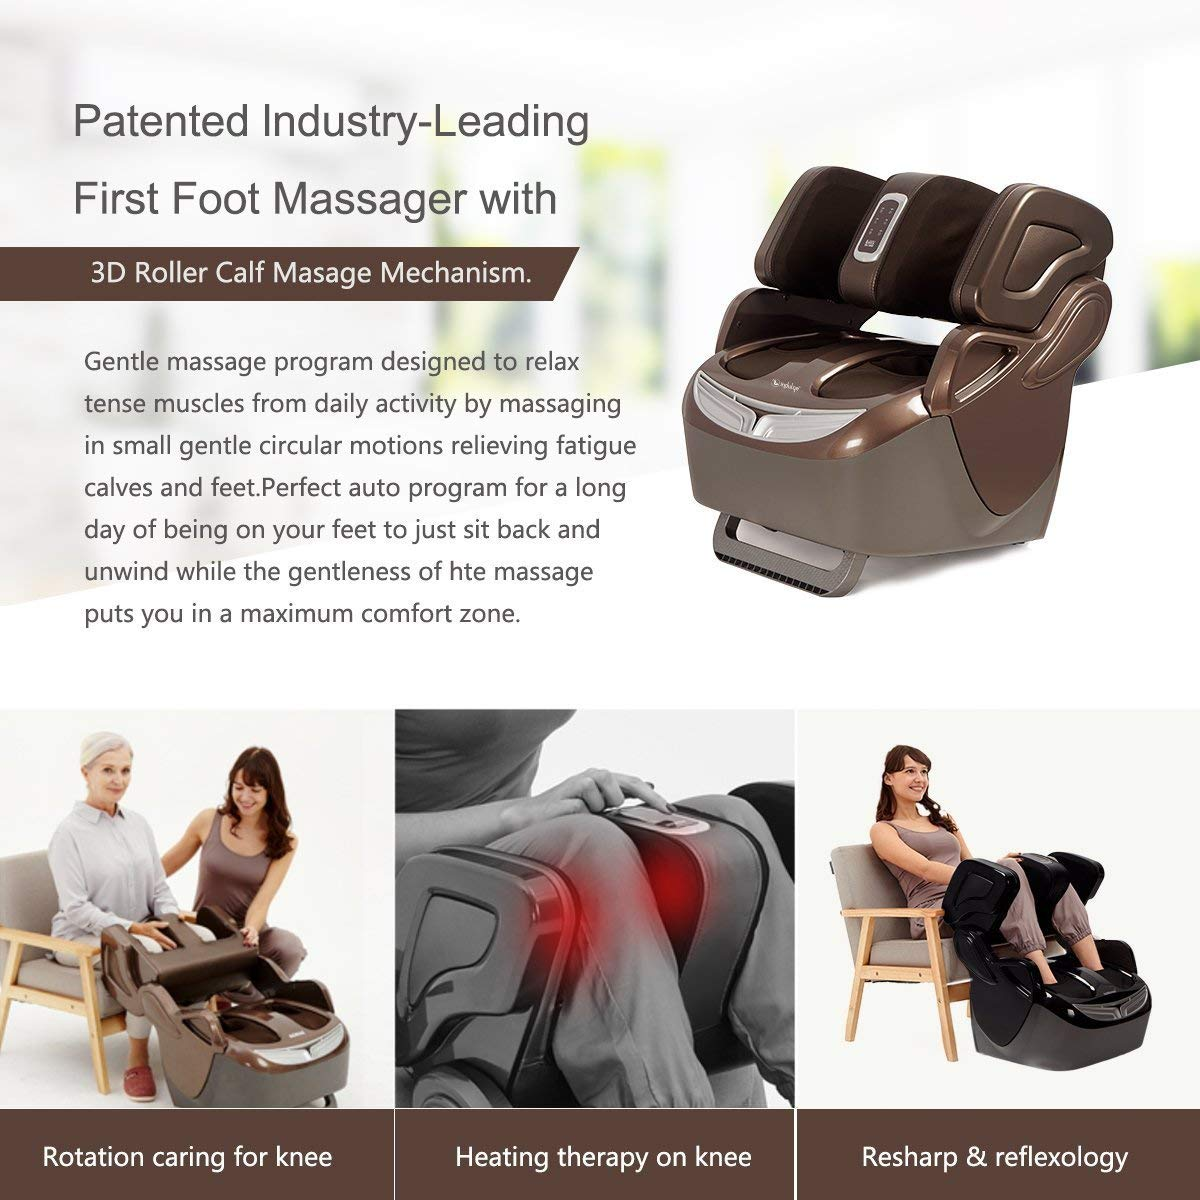 Indulge IF-868 leg foot massager for Knee & Muscle Pain Relief with  Airbags, Kneading, Rollers Vibration, Shiatsu and 17 different Massage  Combinations Machine by PowerMax I Home Use I Foot Spa: Amazon.in: